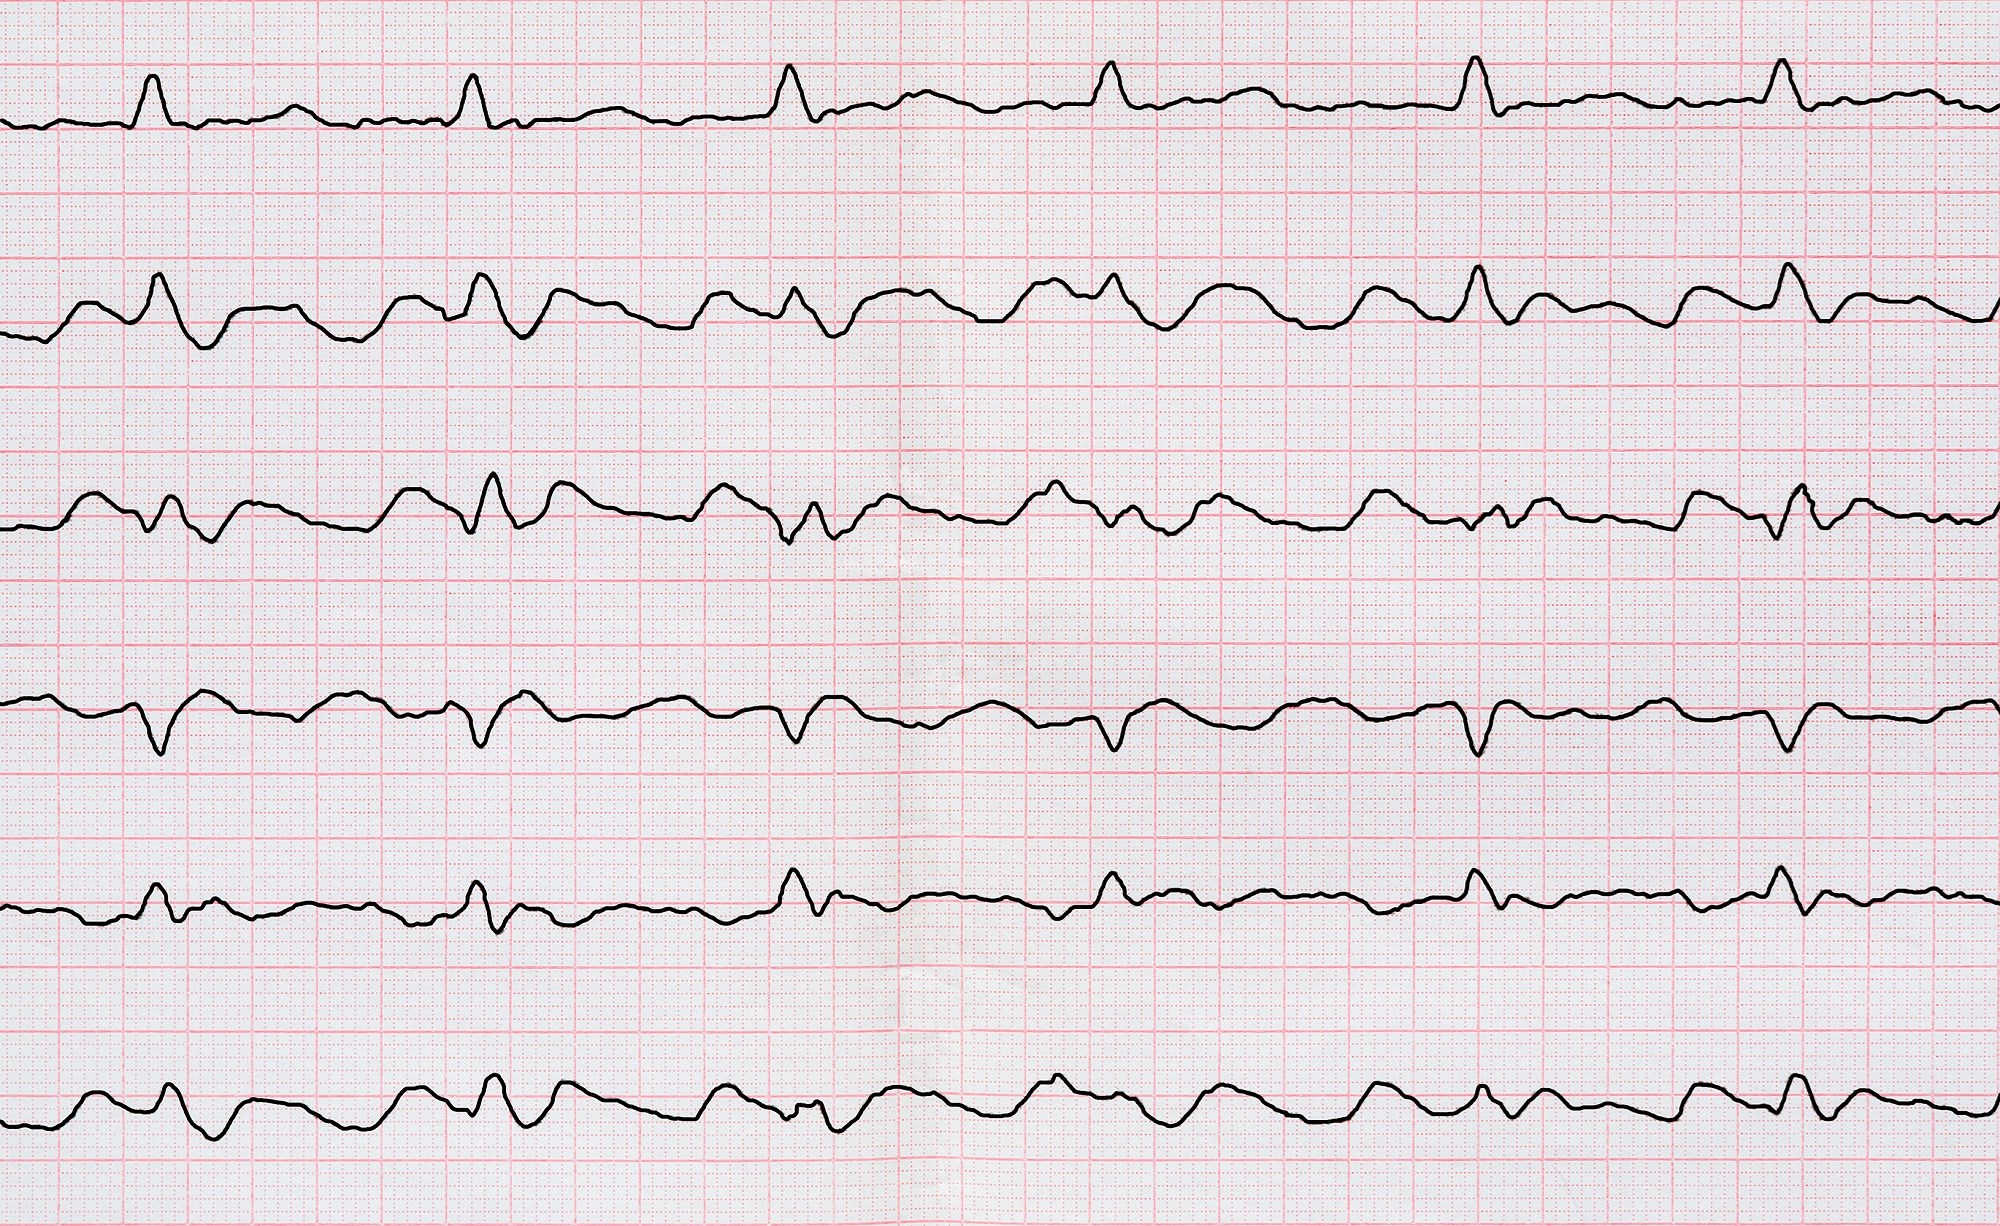 CHA2DS2-VASc Scores Drive Clinical Outcomes in Atrial Fibrillation, Flutter